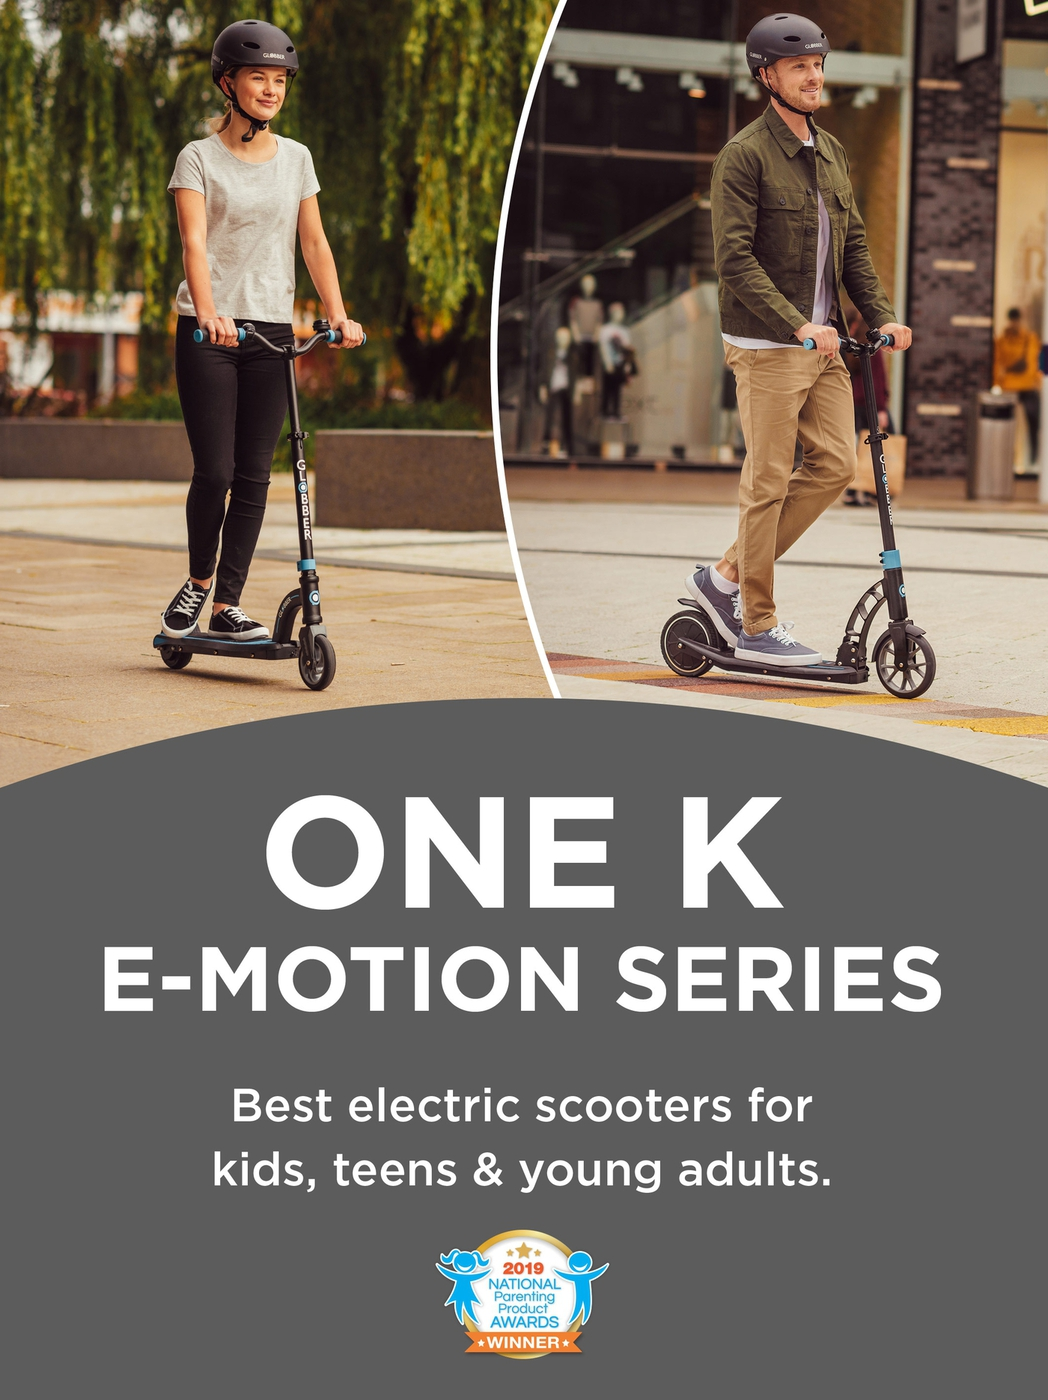 ONE-K-EMOTION-electric-scooters-for-kids-teens-young-adults